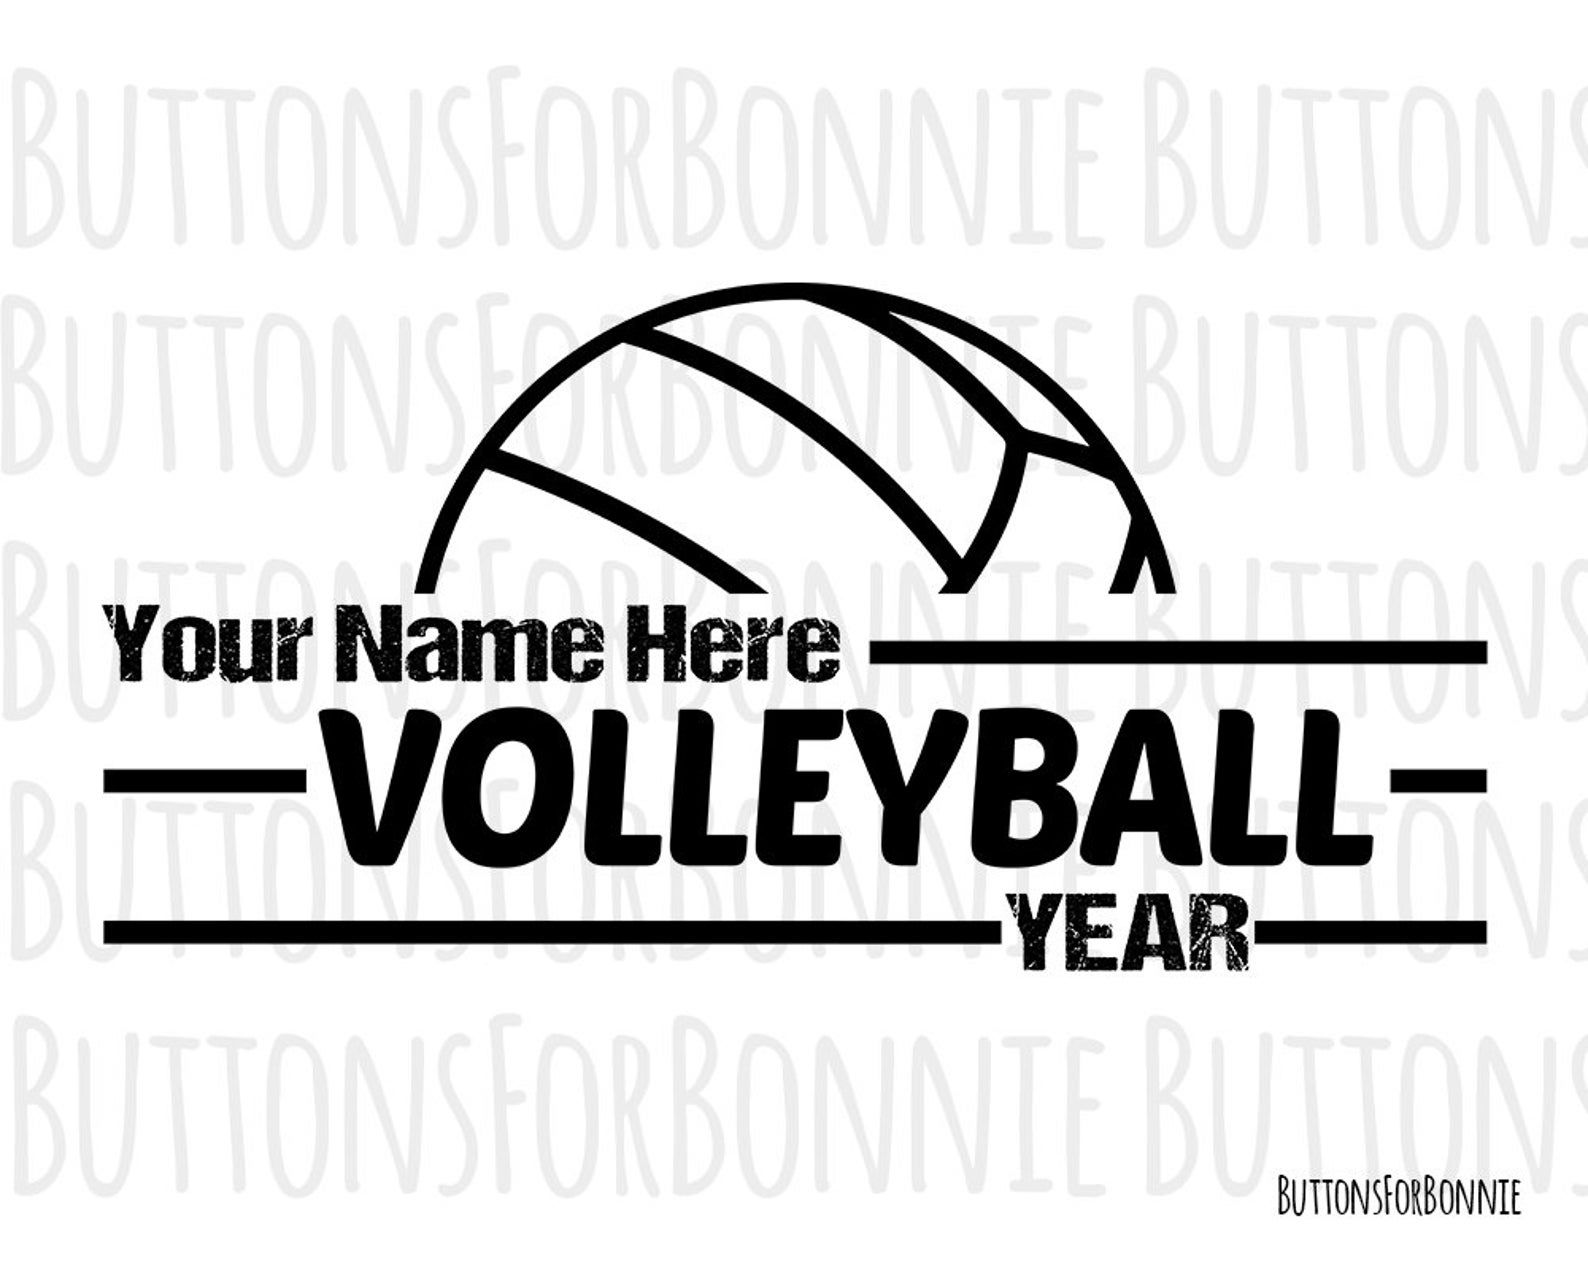 Volleyball Svg Editable Template Volleyball Emblem Etsy In 2020 Team Names Volleyball Volleyball Team